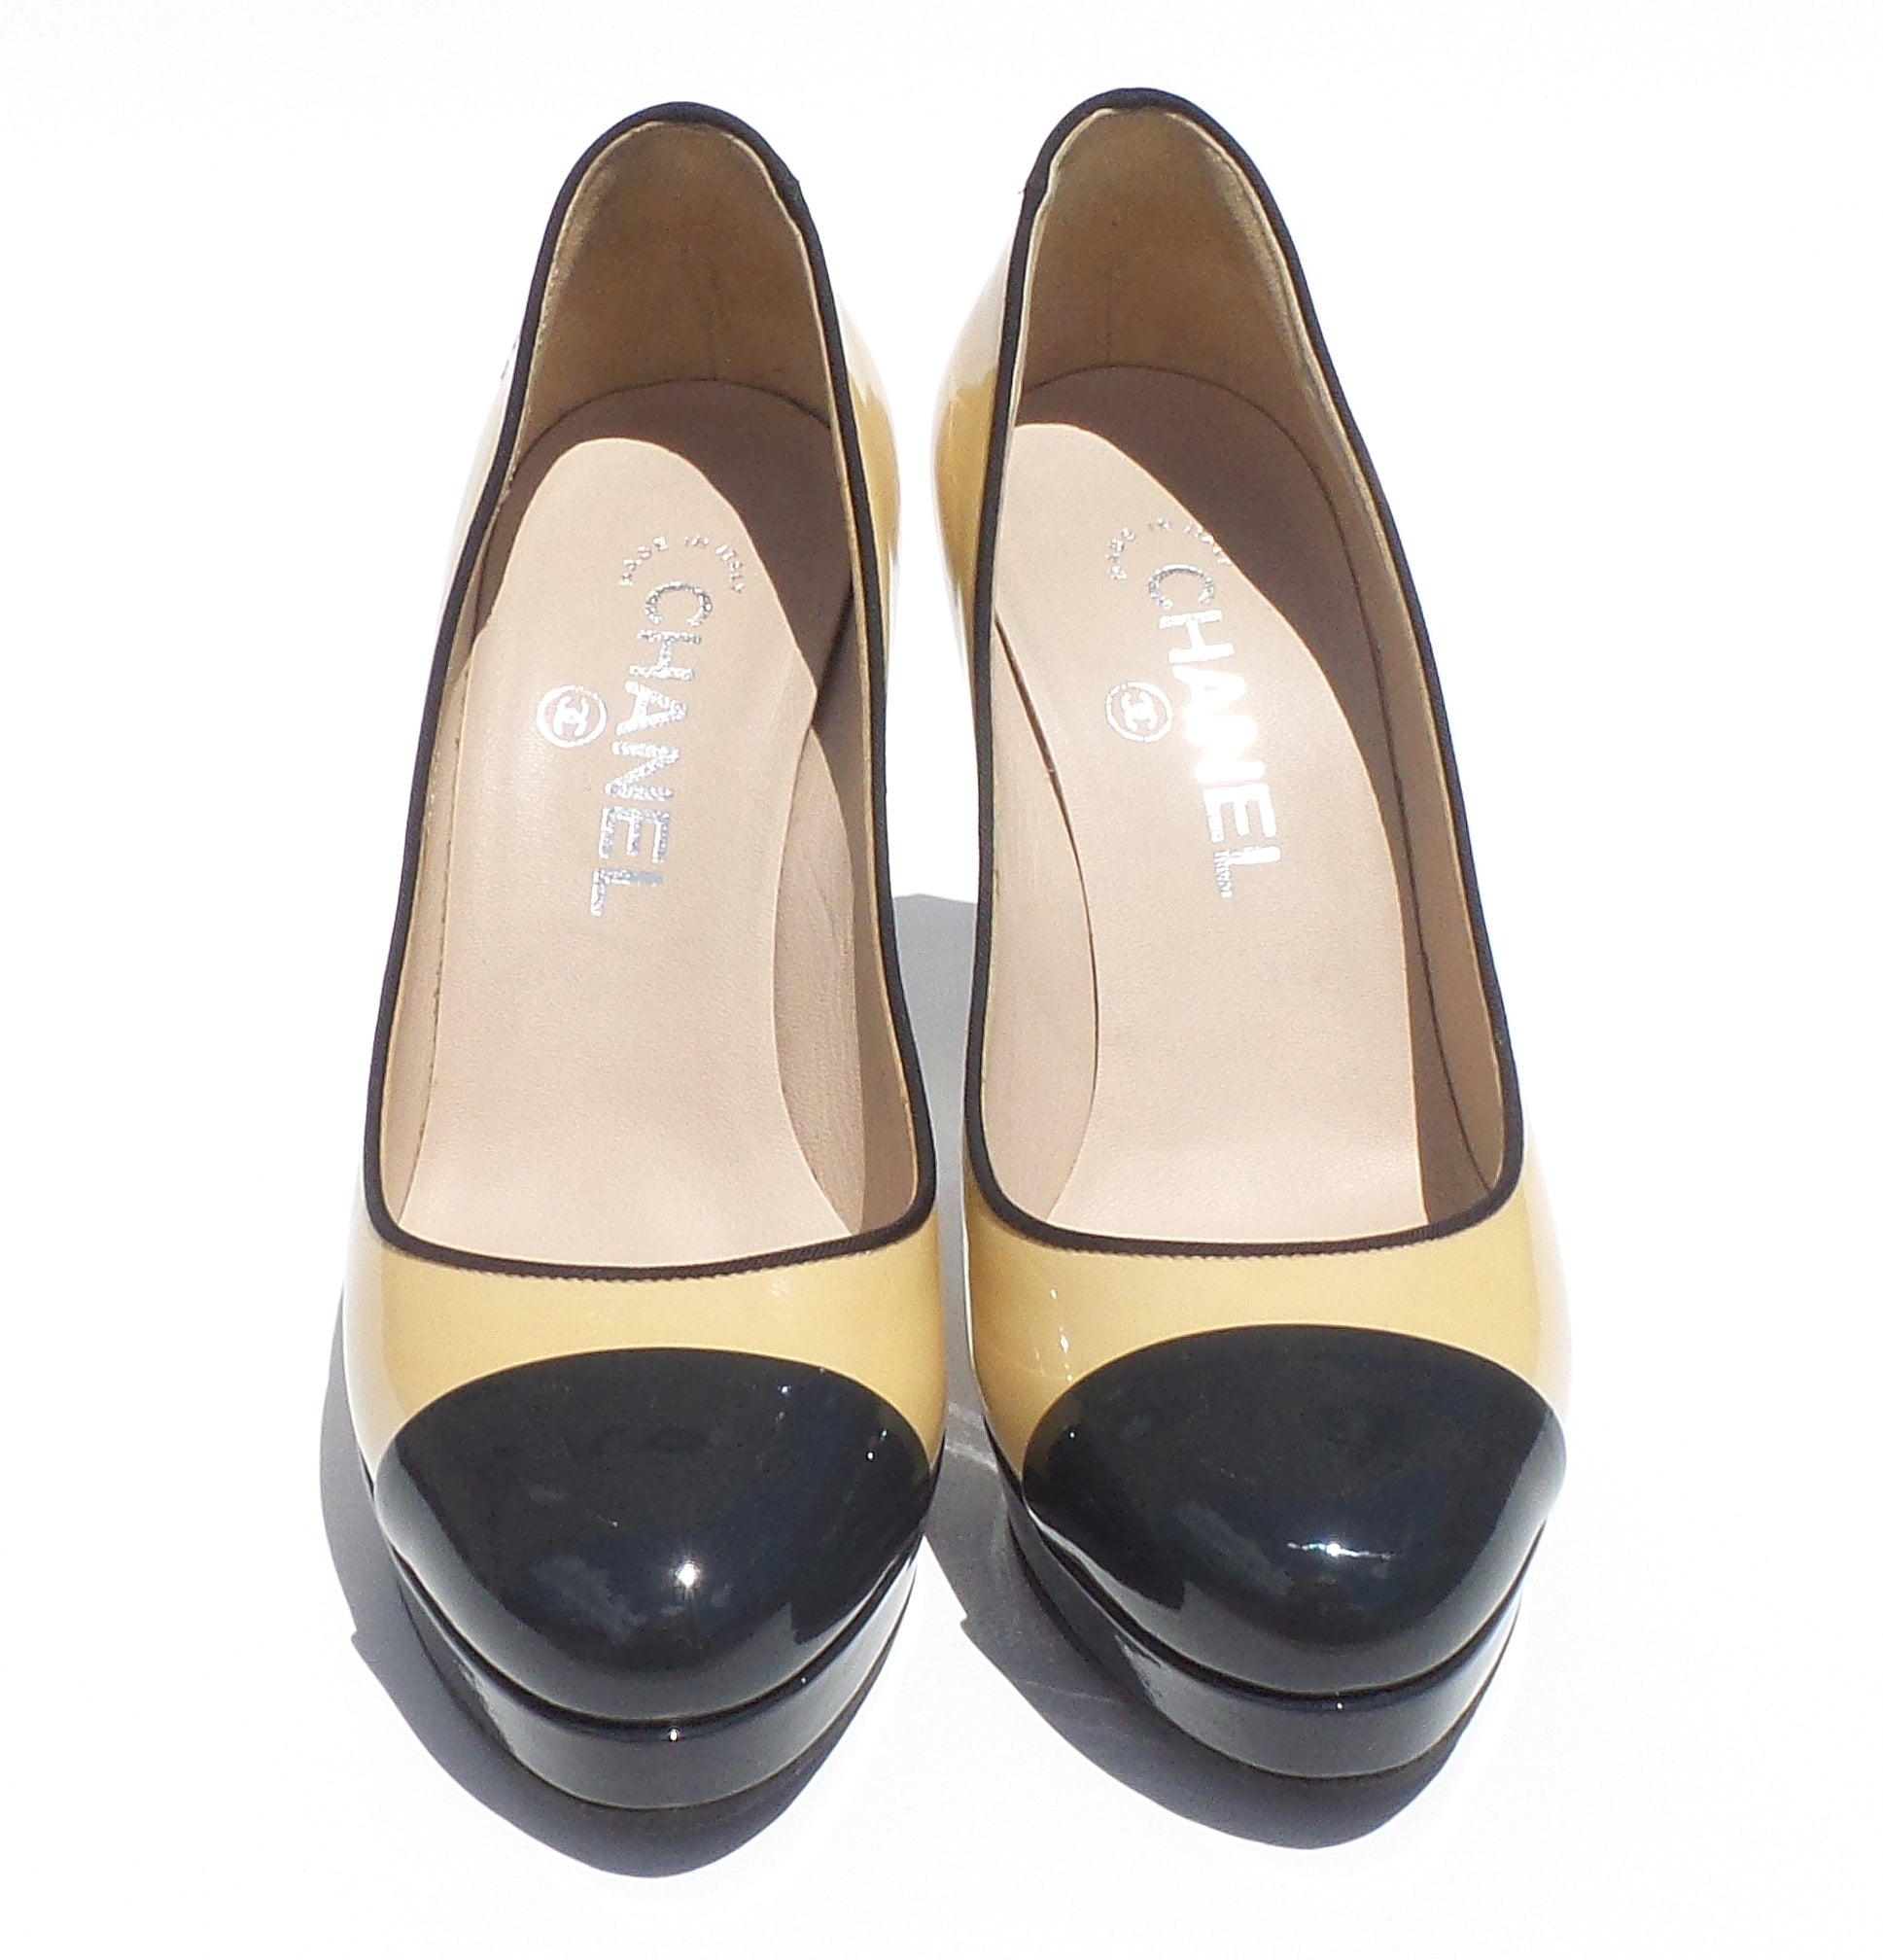 5a985e35a CHANEL Beige Black Navy Patent Leather Cap Toe Platform Silver Heels Pumps  36.5